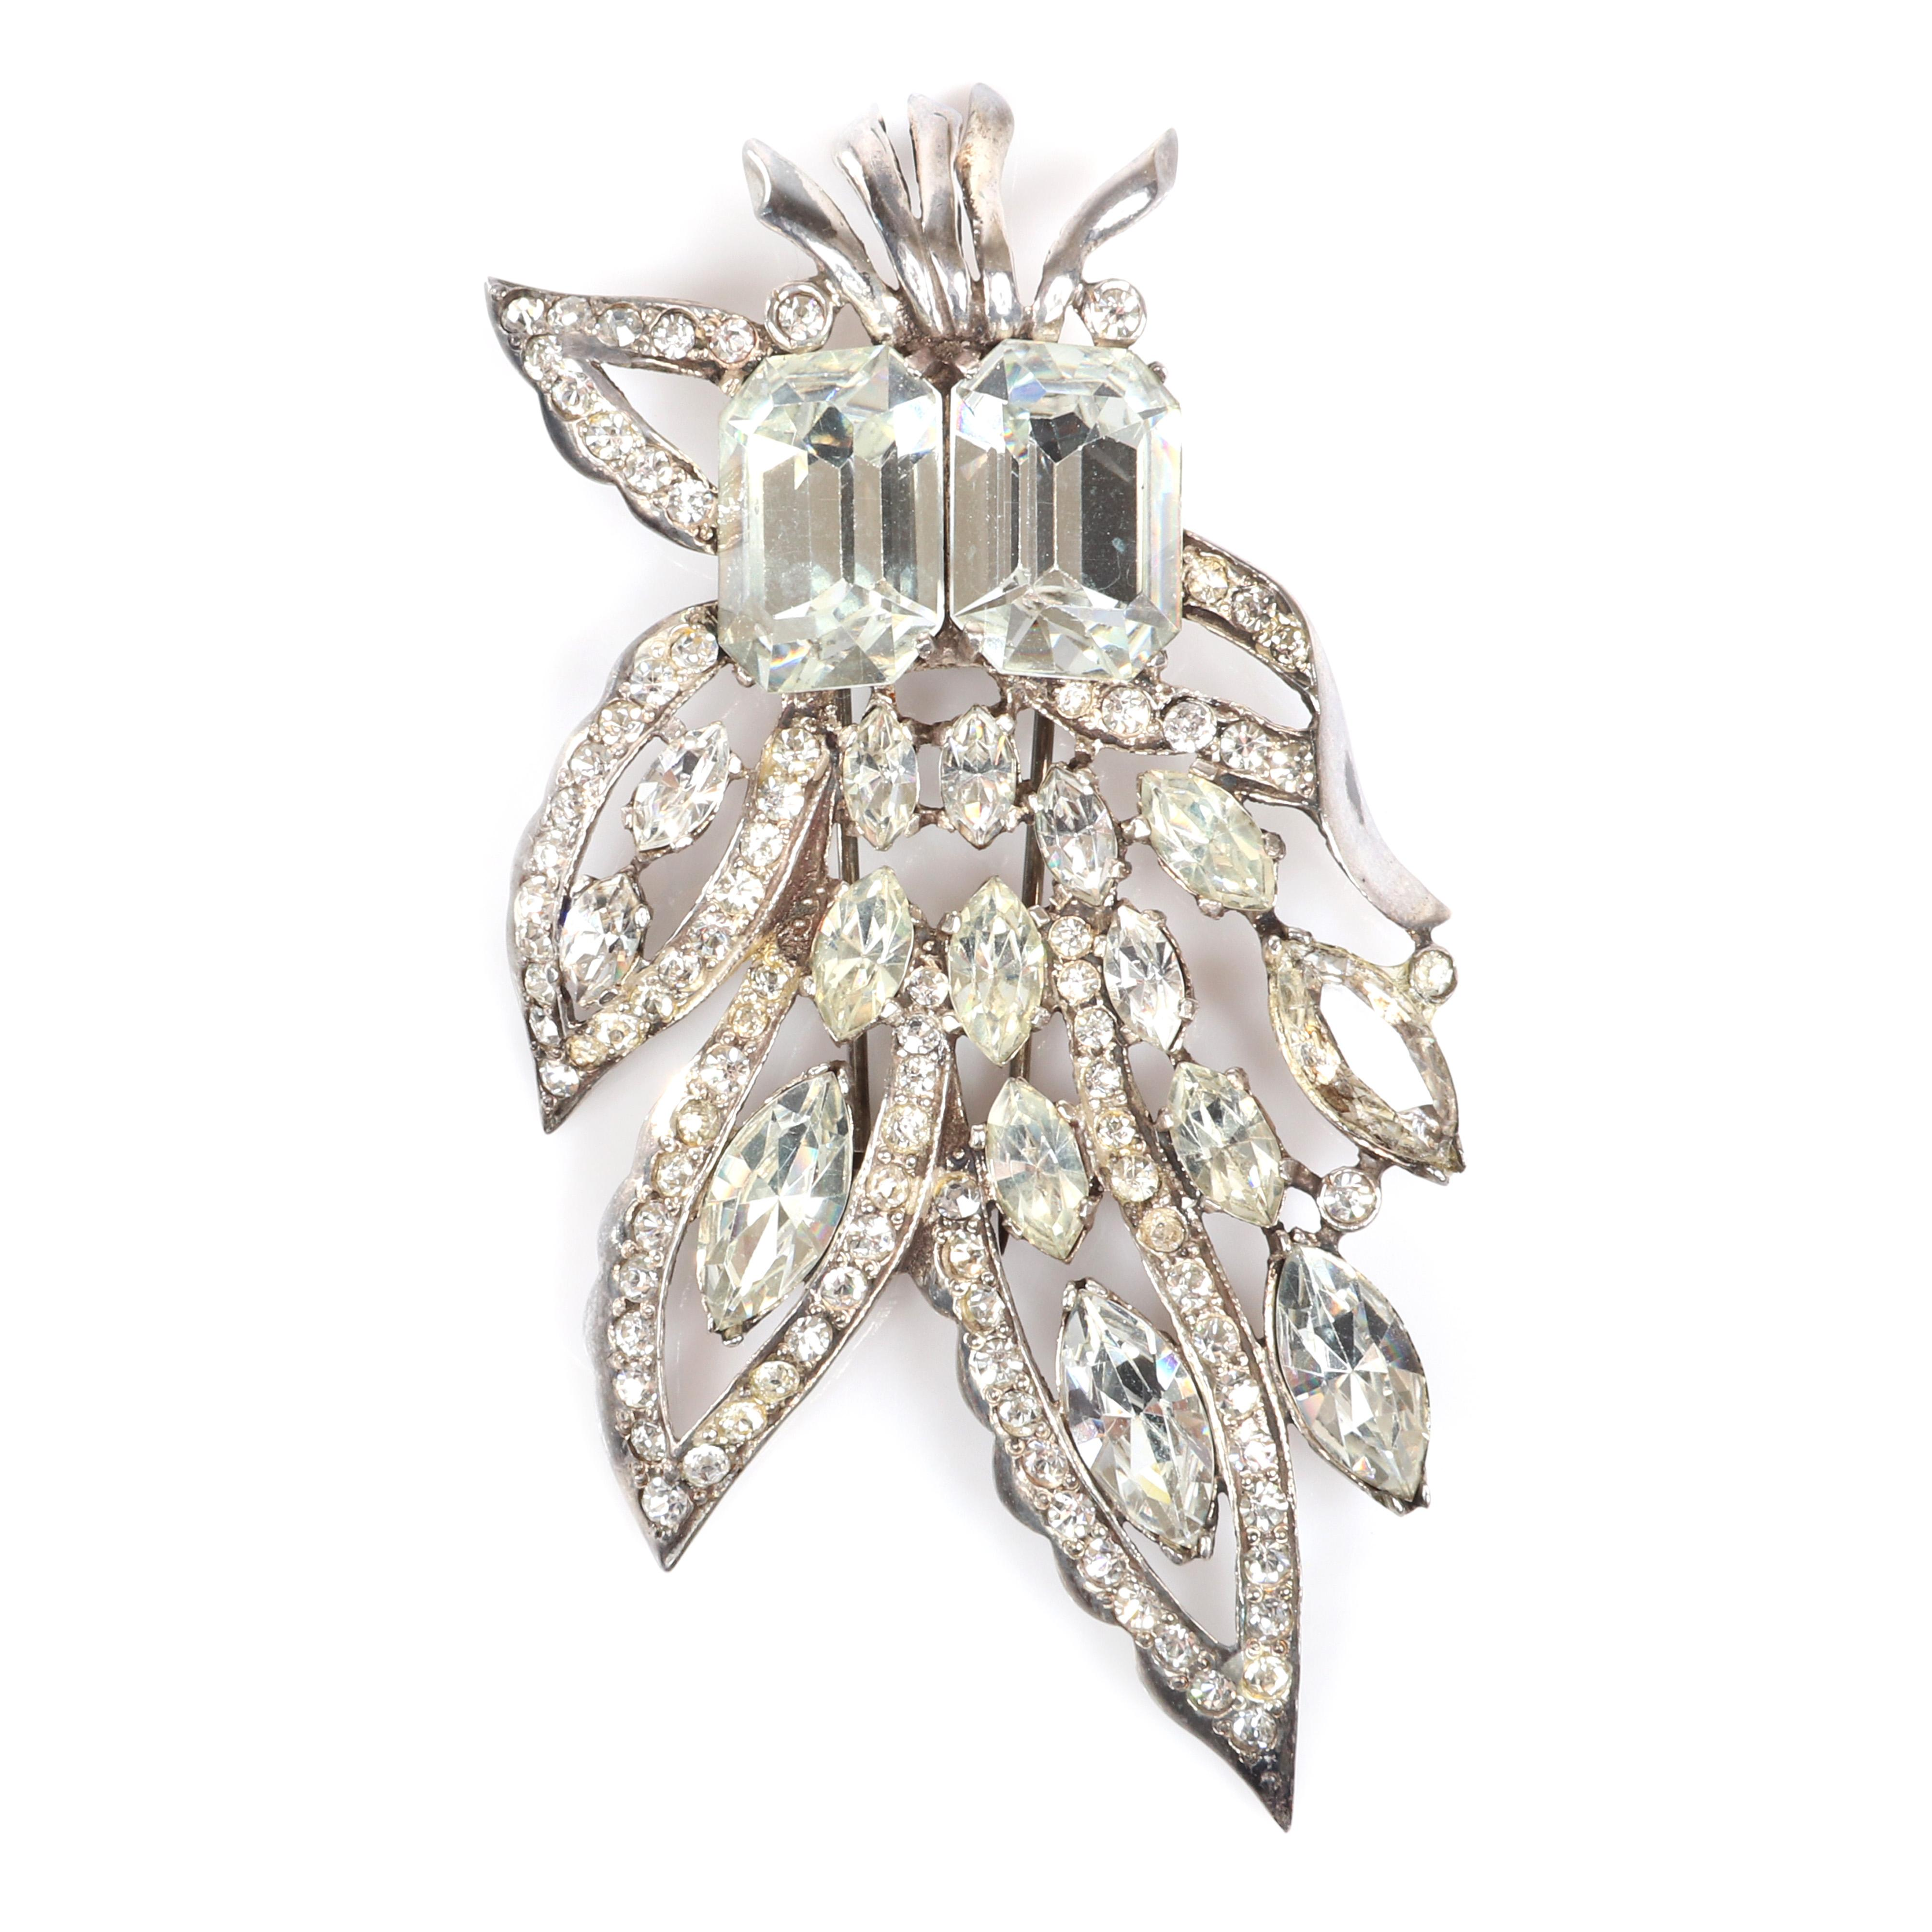 "Eisenberg Original large abstract sterling floral fur clip with two large faceted rectangular stones, pave lined leaves and marquise crystals, mid-1940s. 3 3/4"" x 2"""